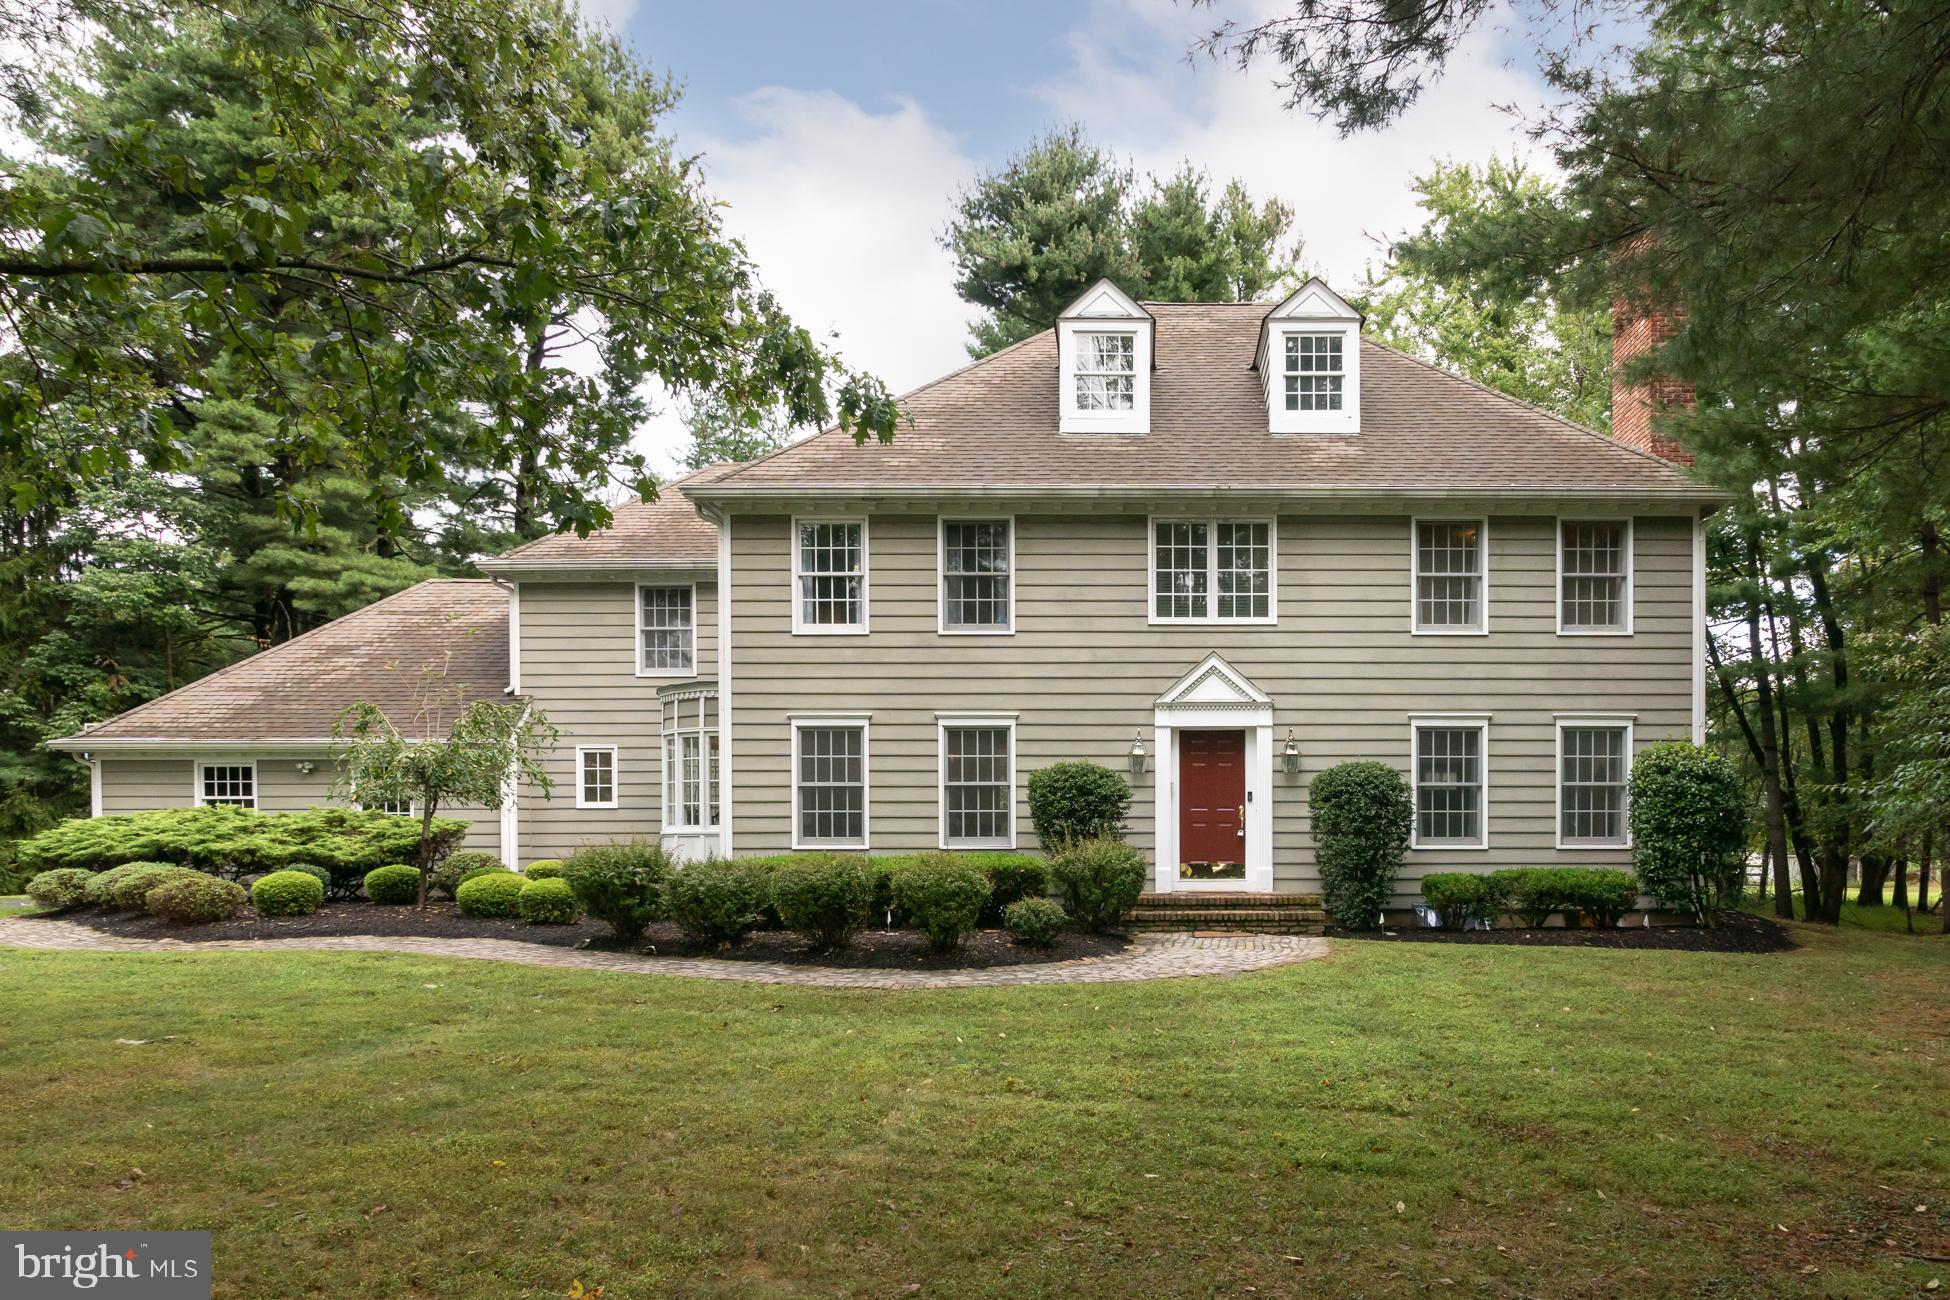 6 SCUDDER COURT, PENNINGTON, NJ 08534